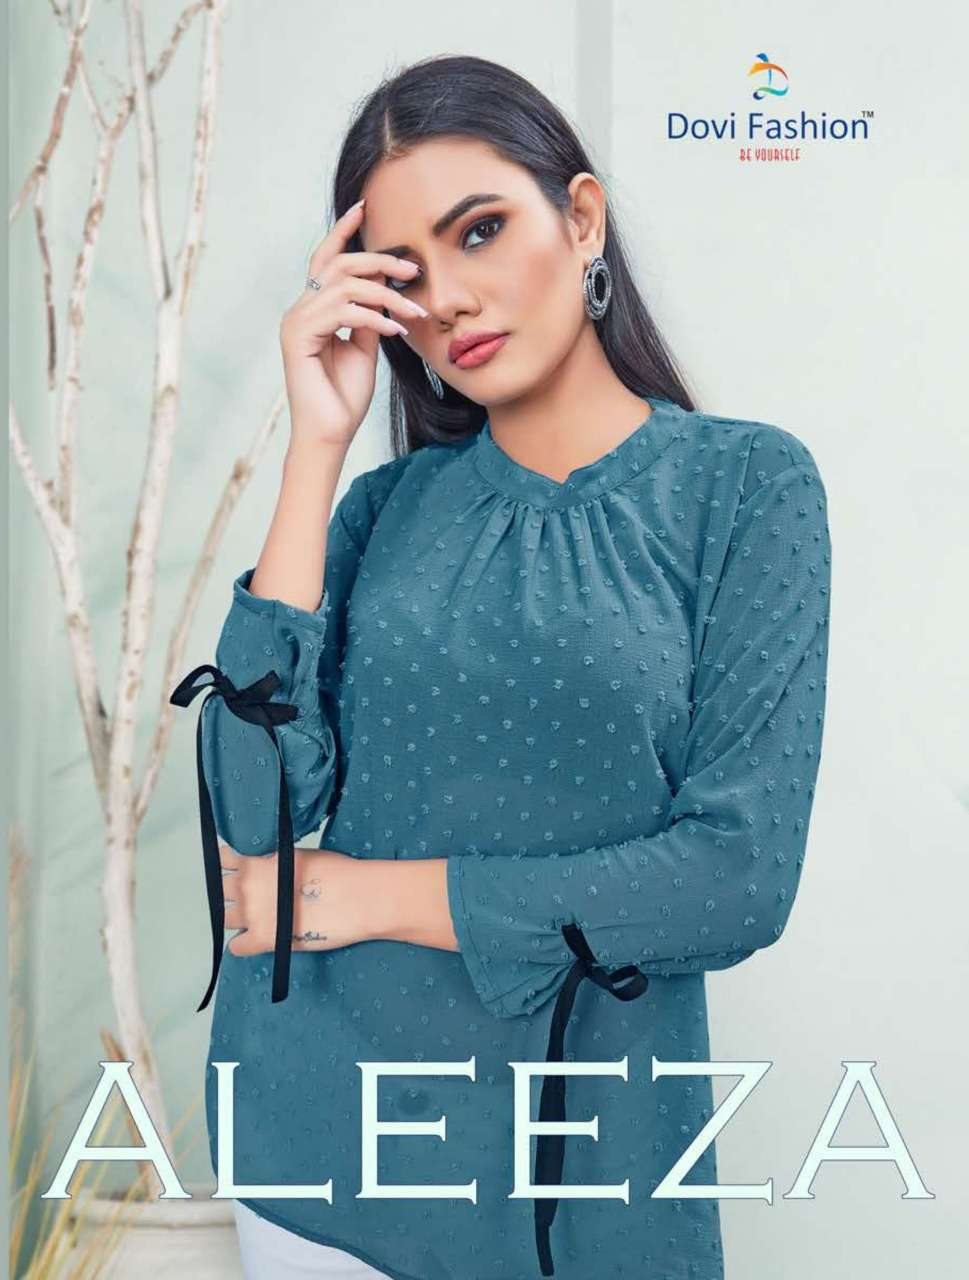 Dovi Fashion Aleeza Fancy Short Top Collection In Wholesale